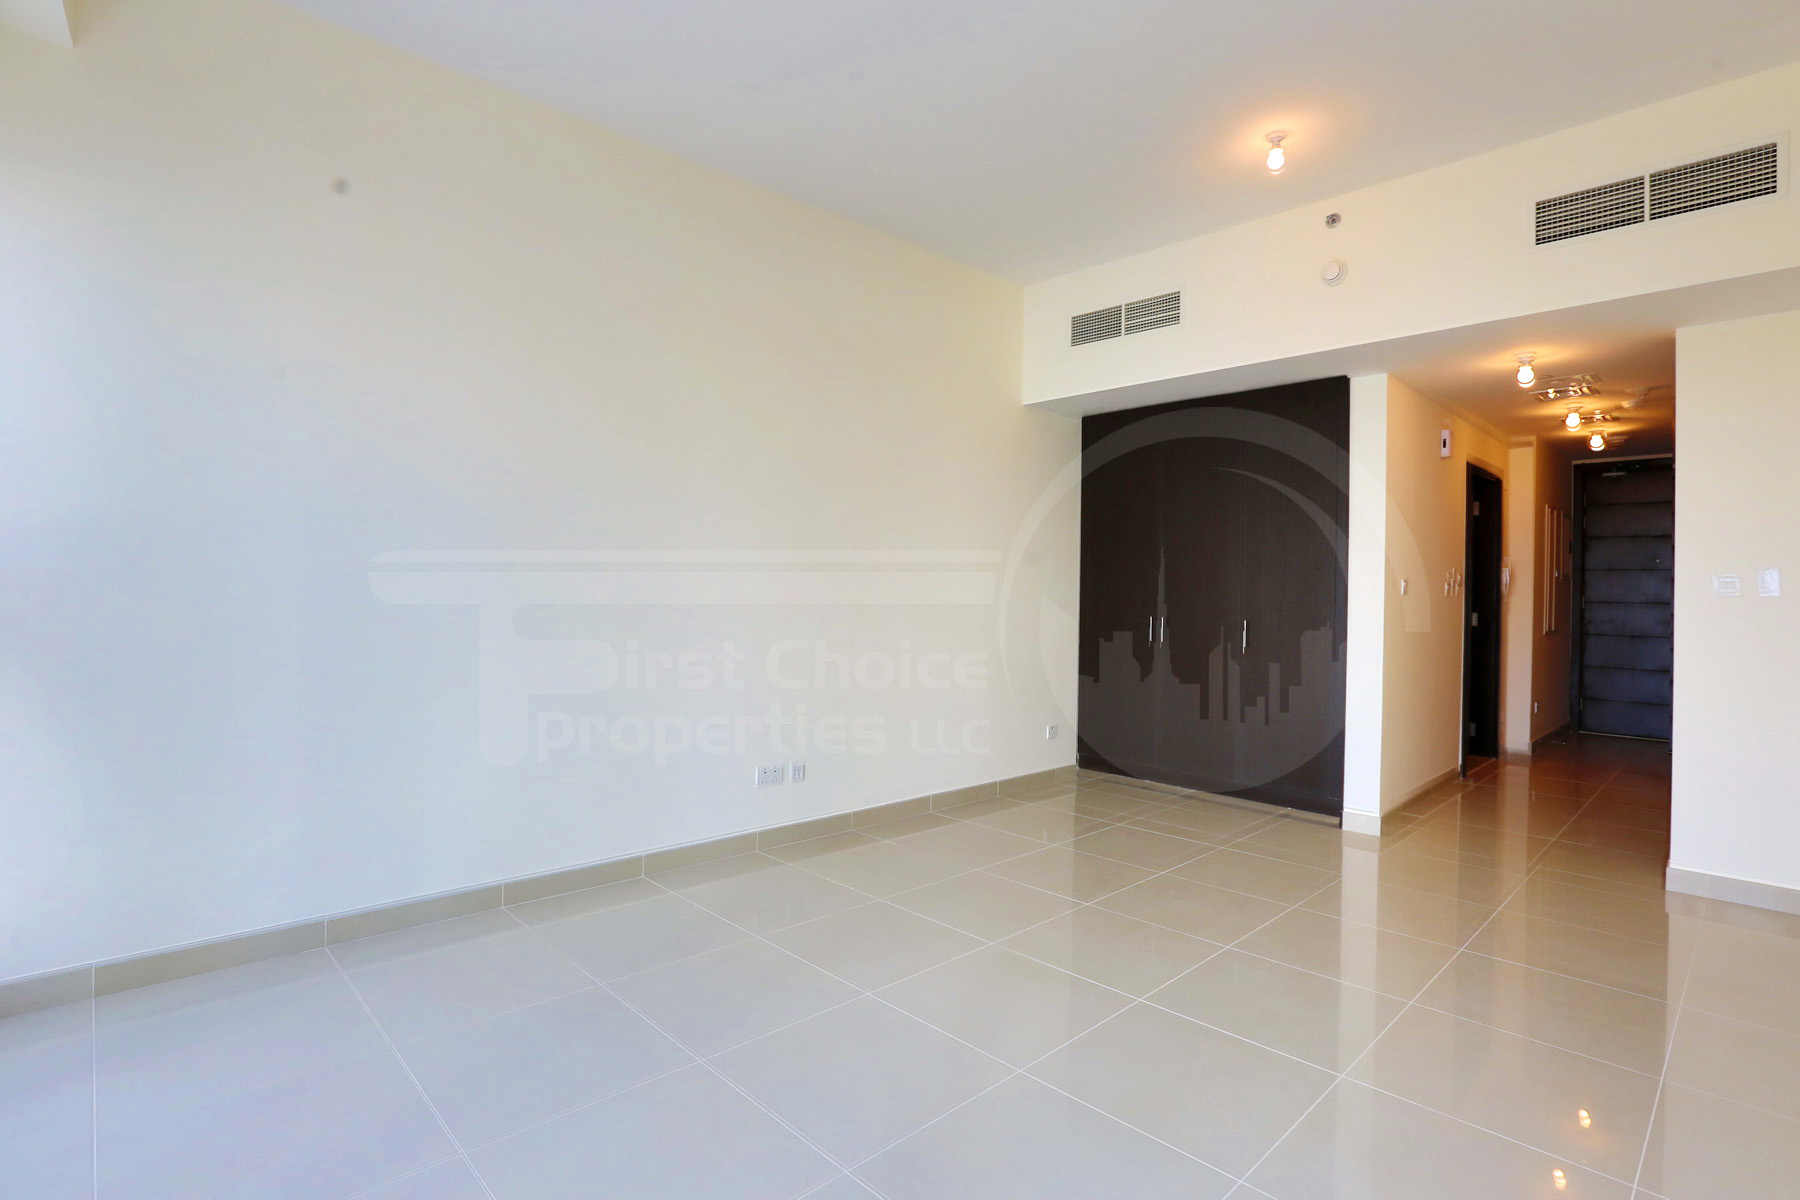 Studio Apartment - Abu Dhabi - UAE - Al Reem Island - City of Lights - C10 Building (8).JPG